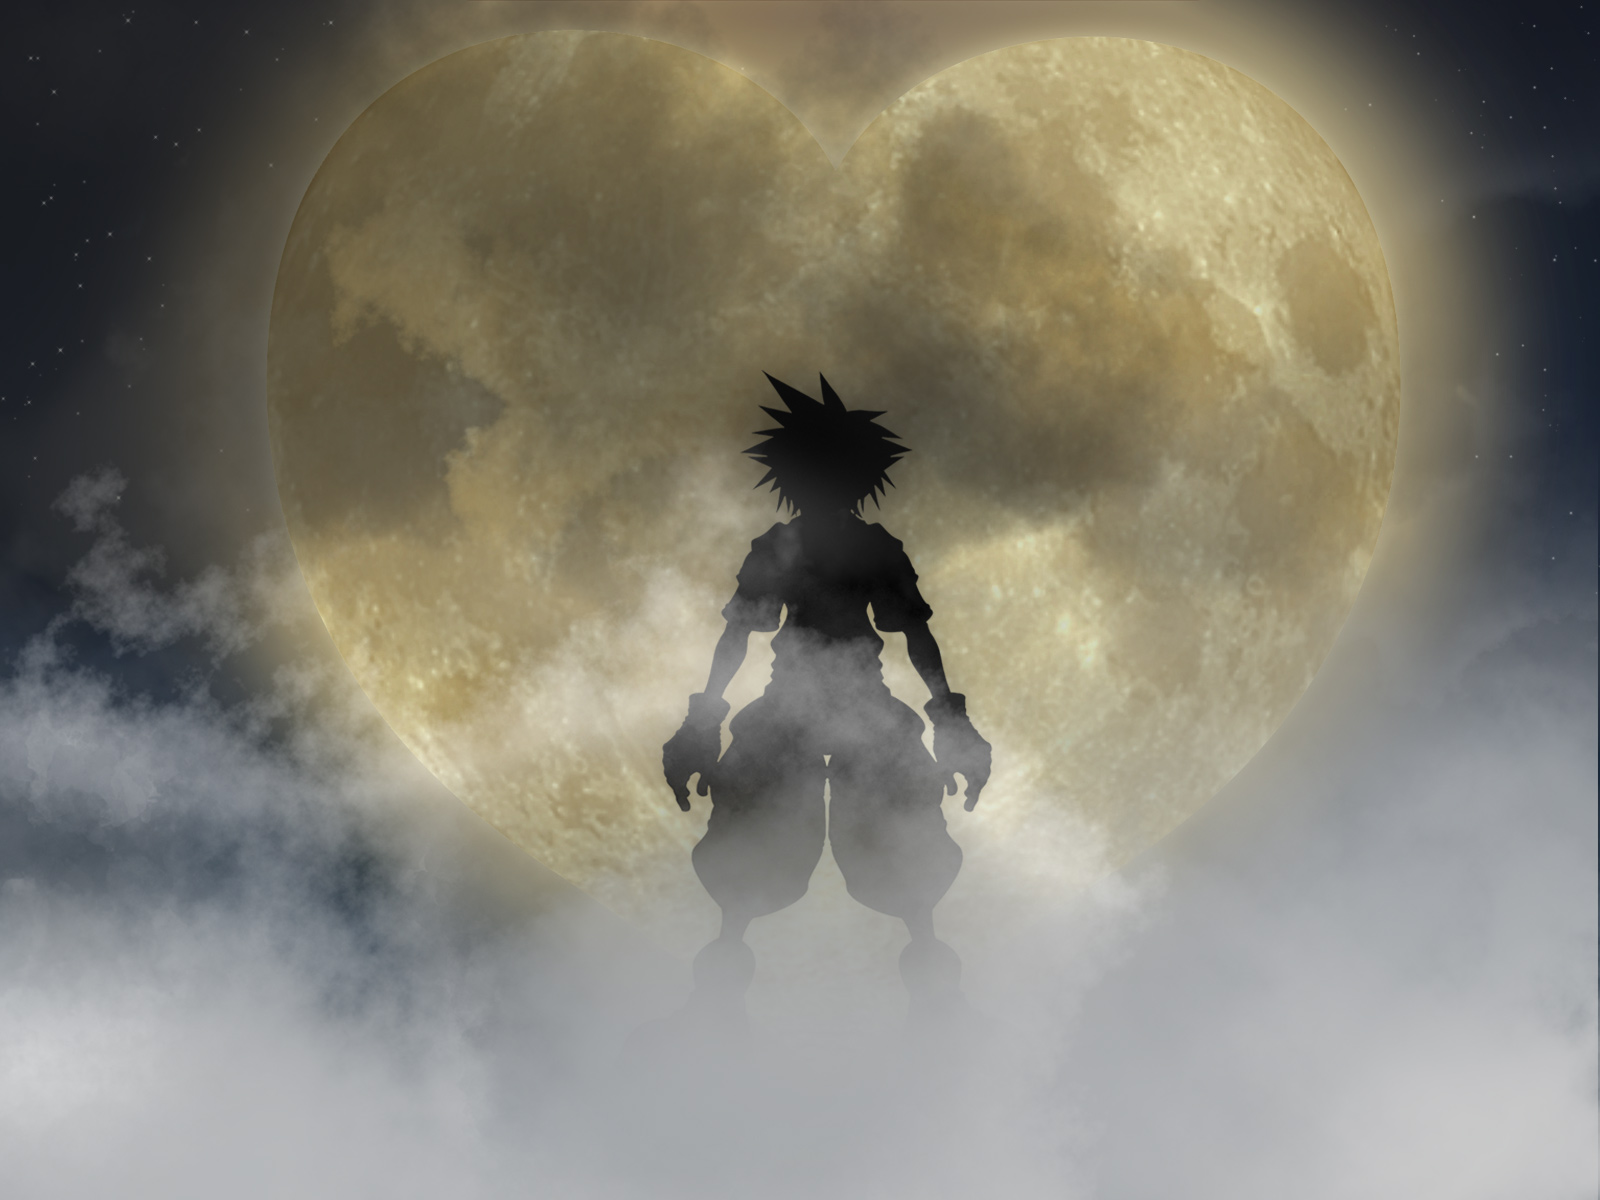 Kingdom Hearts 3 Not to be Released in 2012